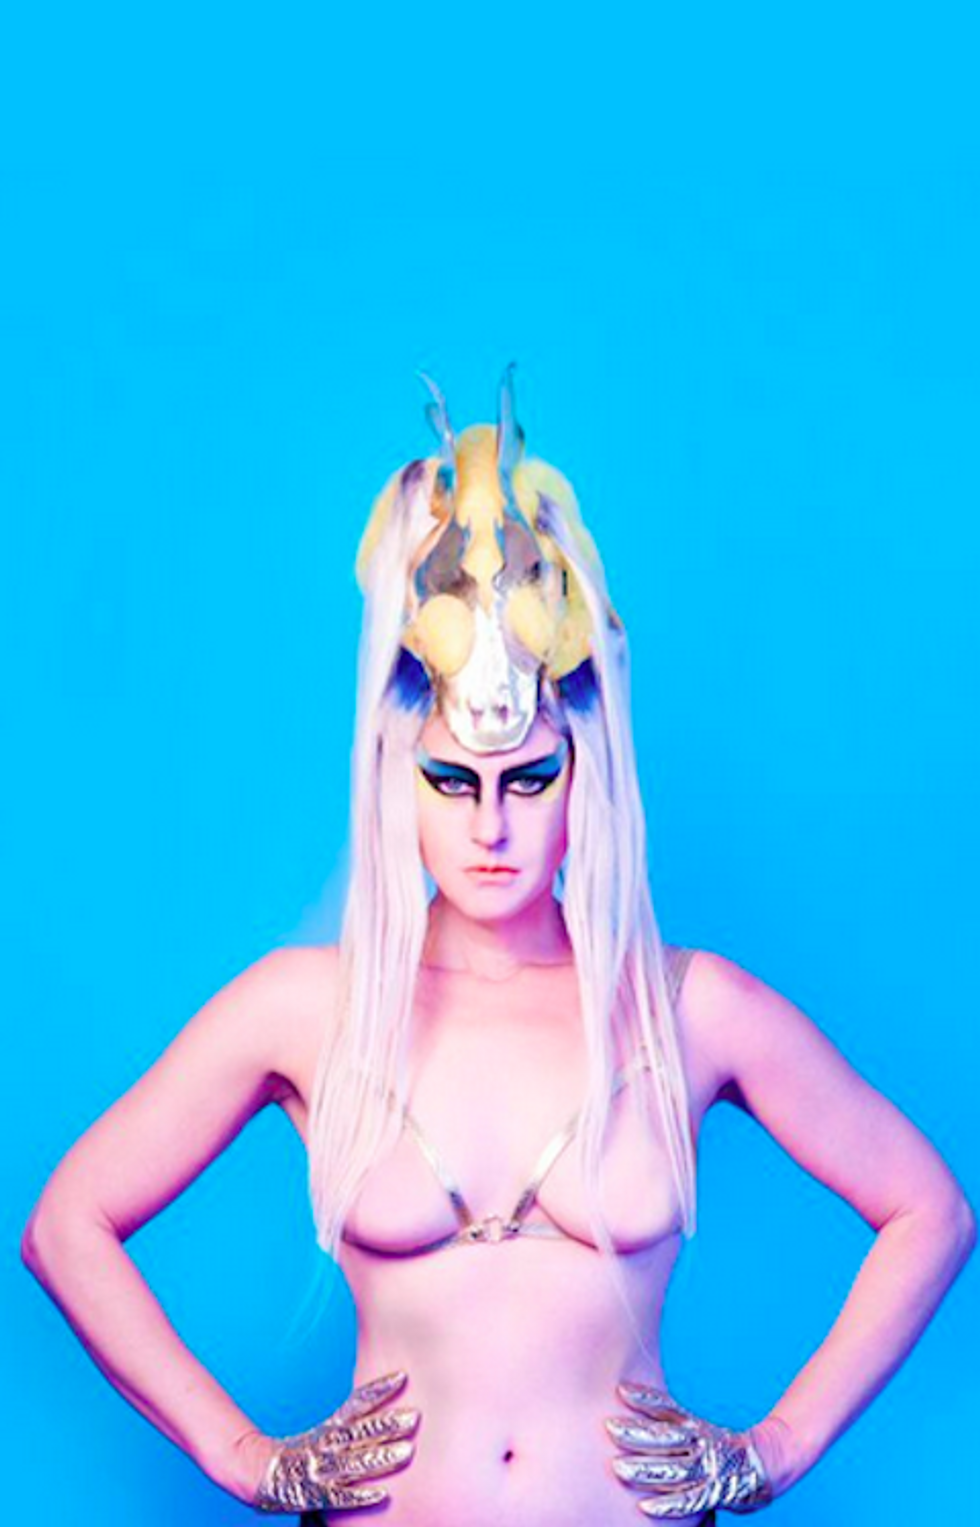 Provocateur Extraordinaire Peaches is Back with a Laser Butt Plug Video